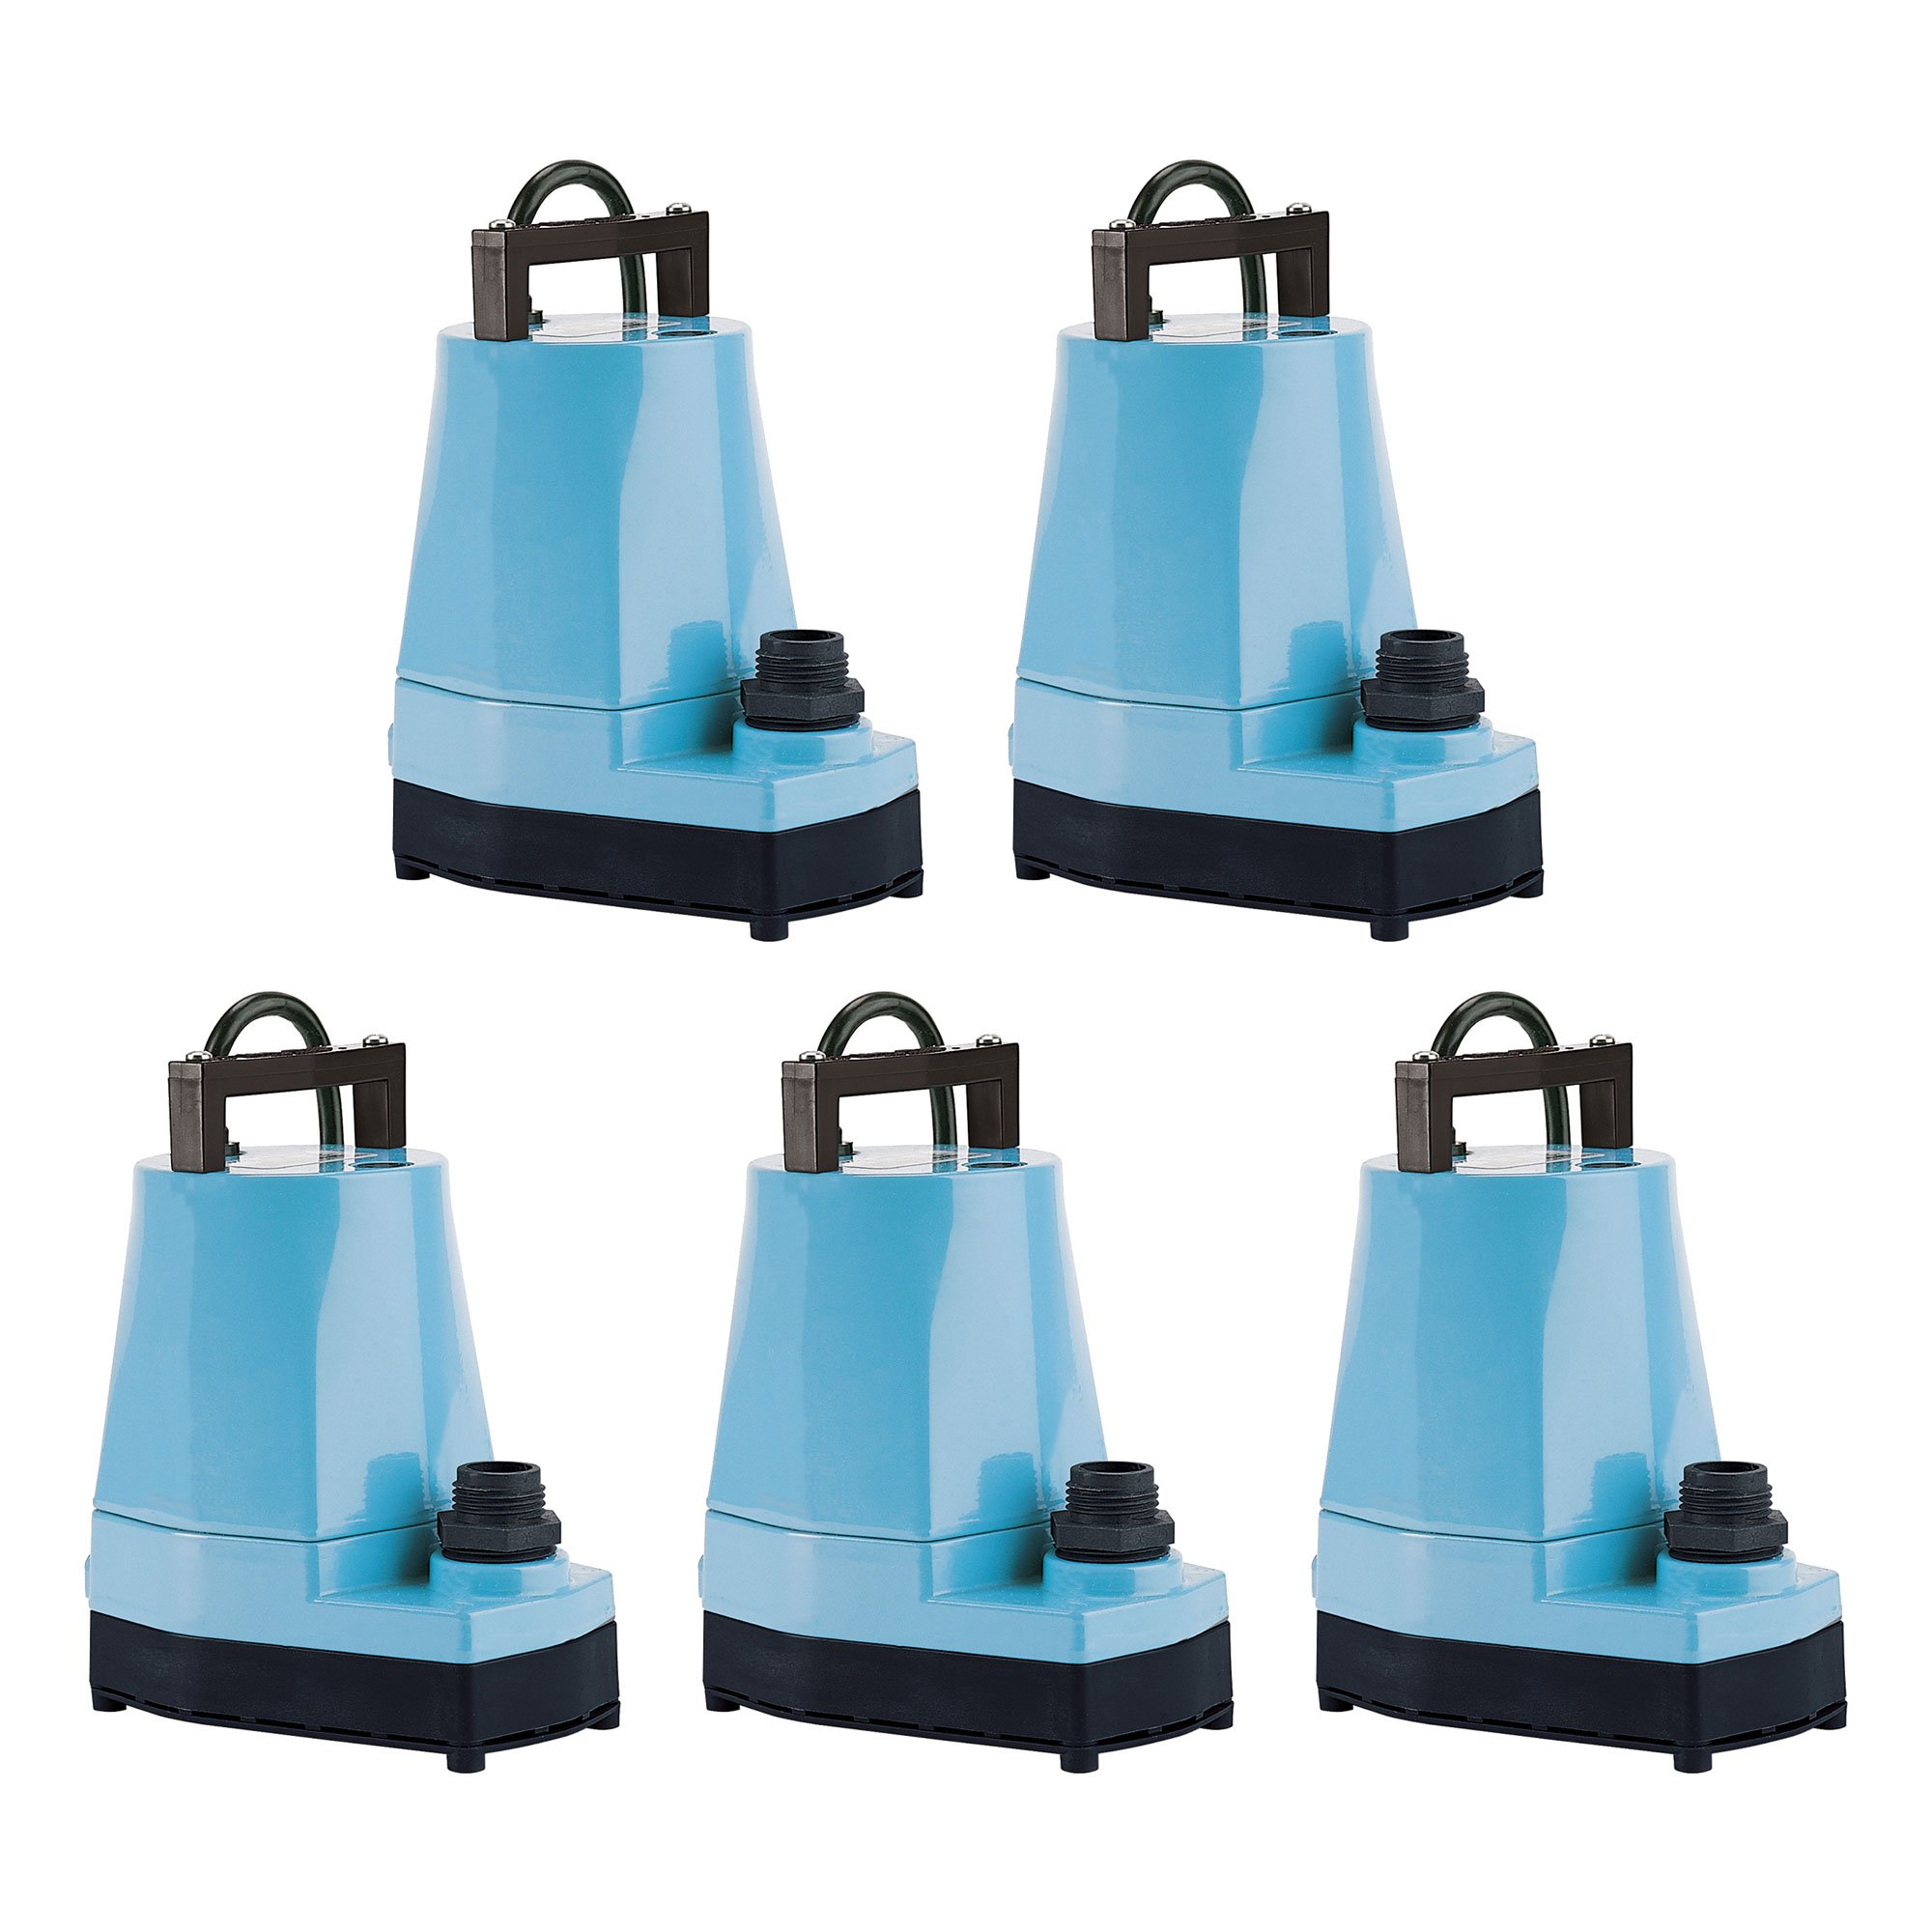 Little Giant 5 MSP 1/6 HP 1200 GPH Submersible or Inline Utility Pump (5 Pack)